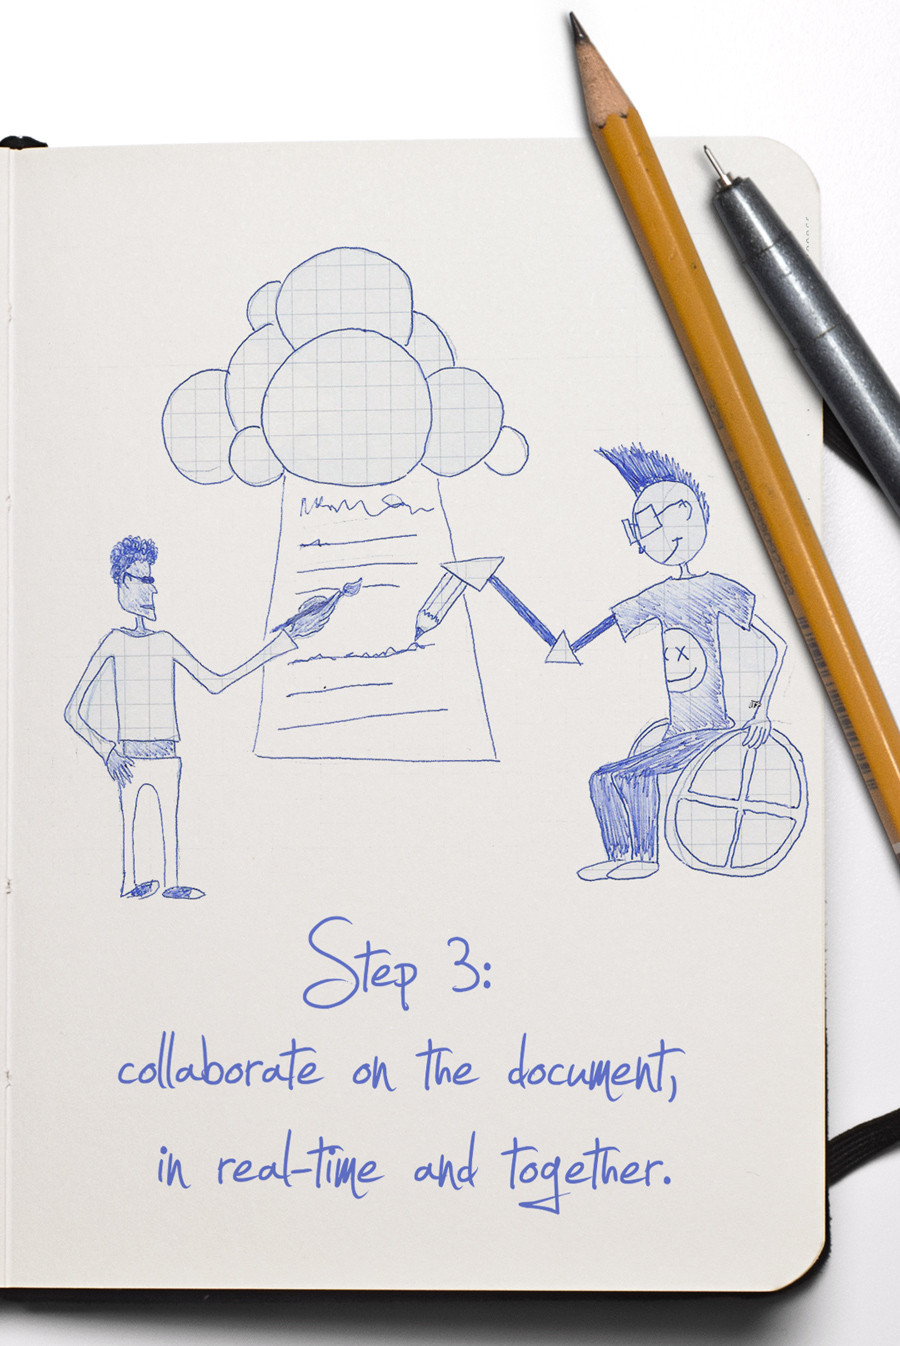 ownCloud Collabora collaborative editing